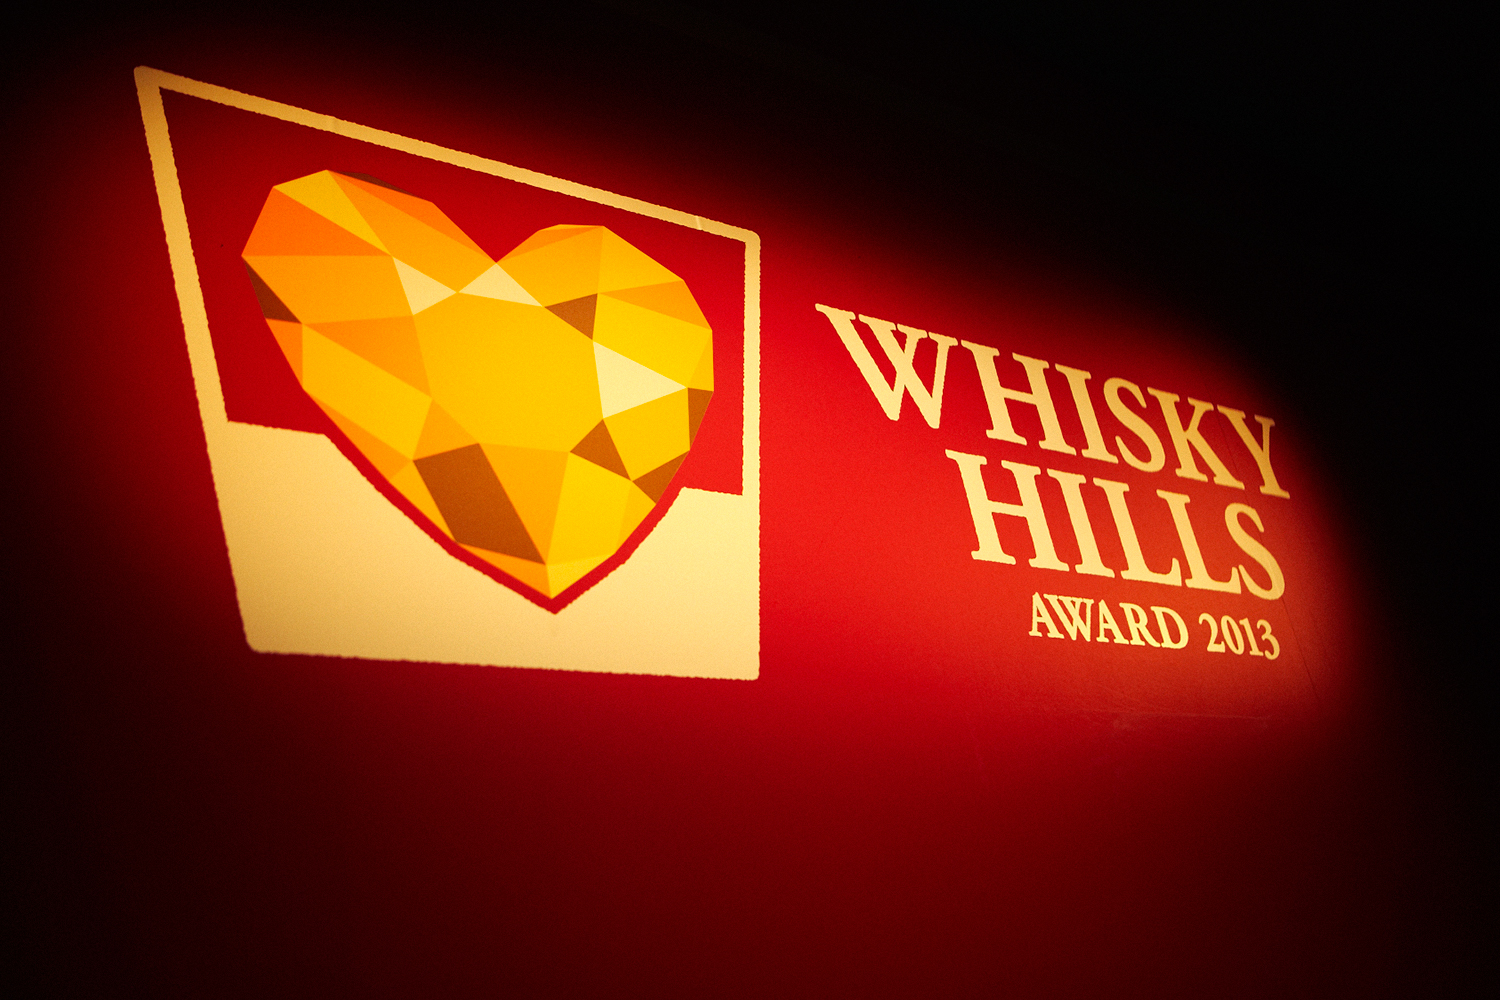 whiskyhills13_010